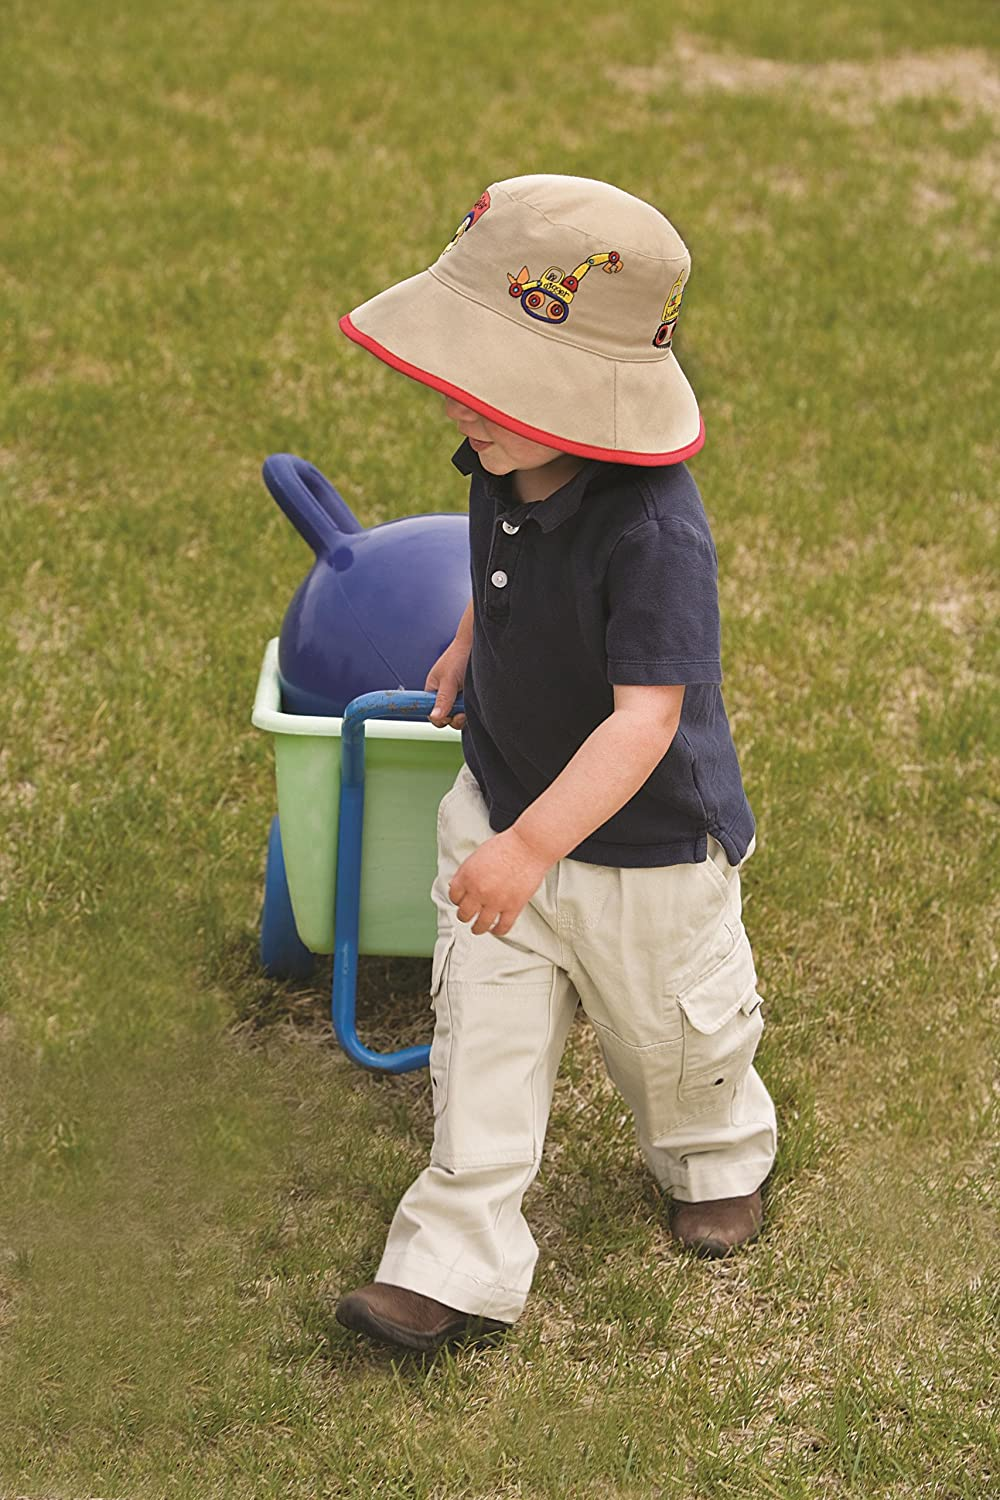 Wallaroo Boy s Kid s Digger UV Sun Hat - UPF50+ Sun Protection 2-5 Years  (Adjustable up to 52 cm)  Amazon.co.uk  Sports   Outdoors 080ec2e1c5fd